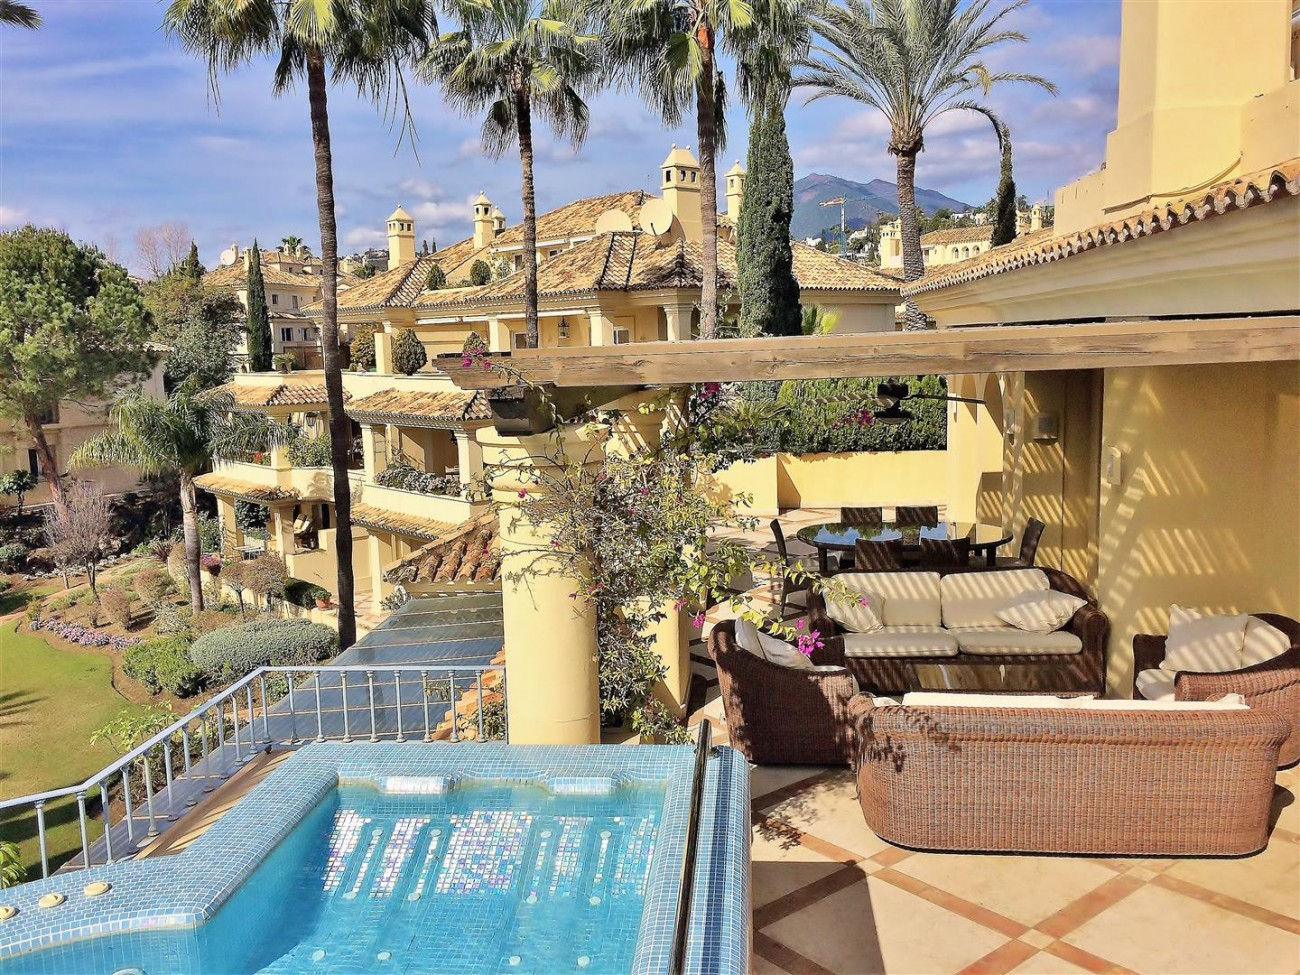 Penthouse for sale Las Alamandas Nueva Andalucia Marbella Spain (22) (Large)